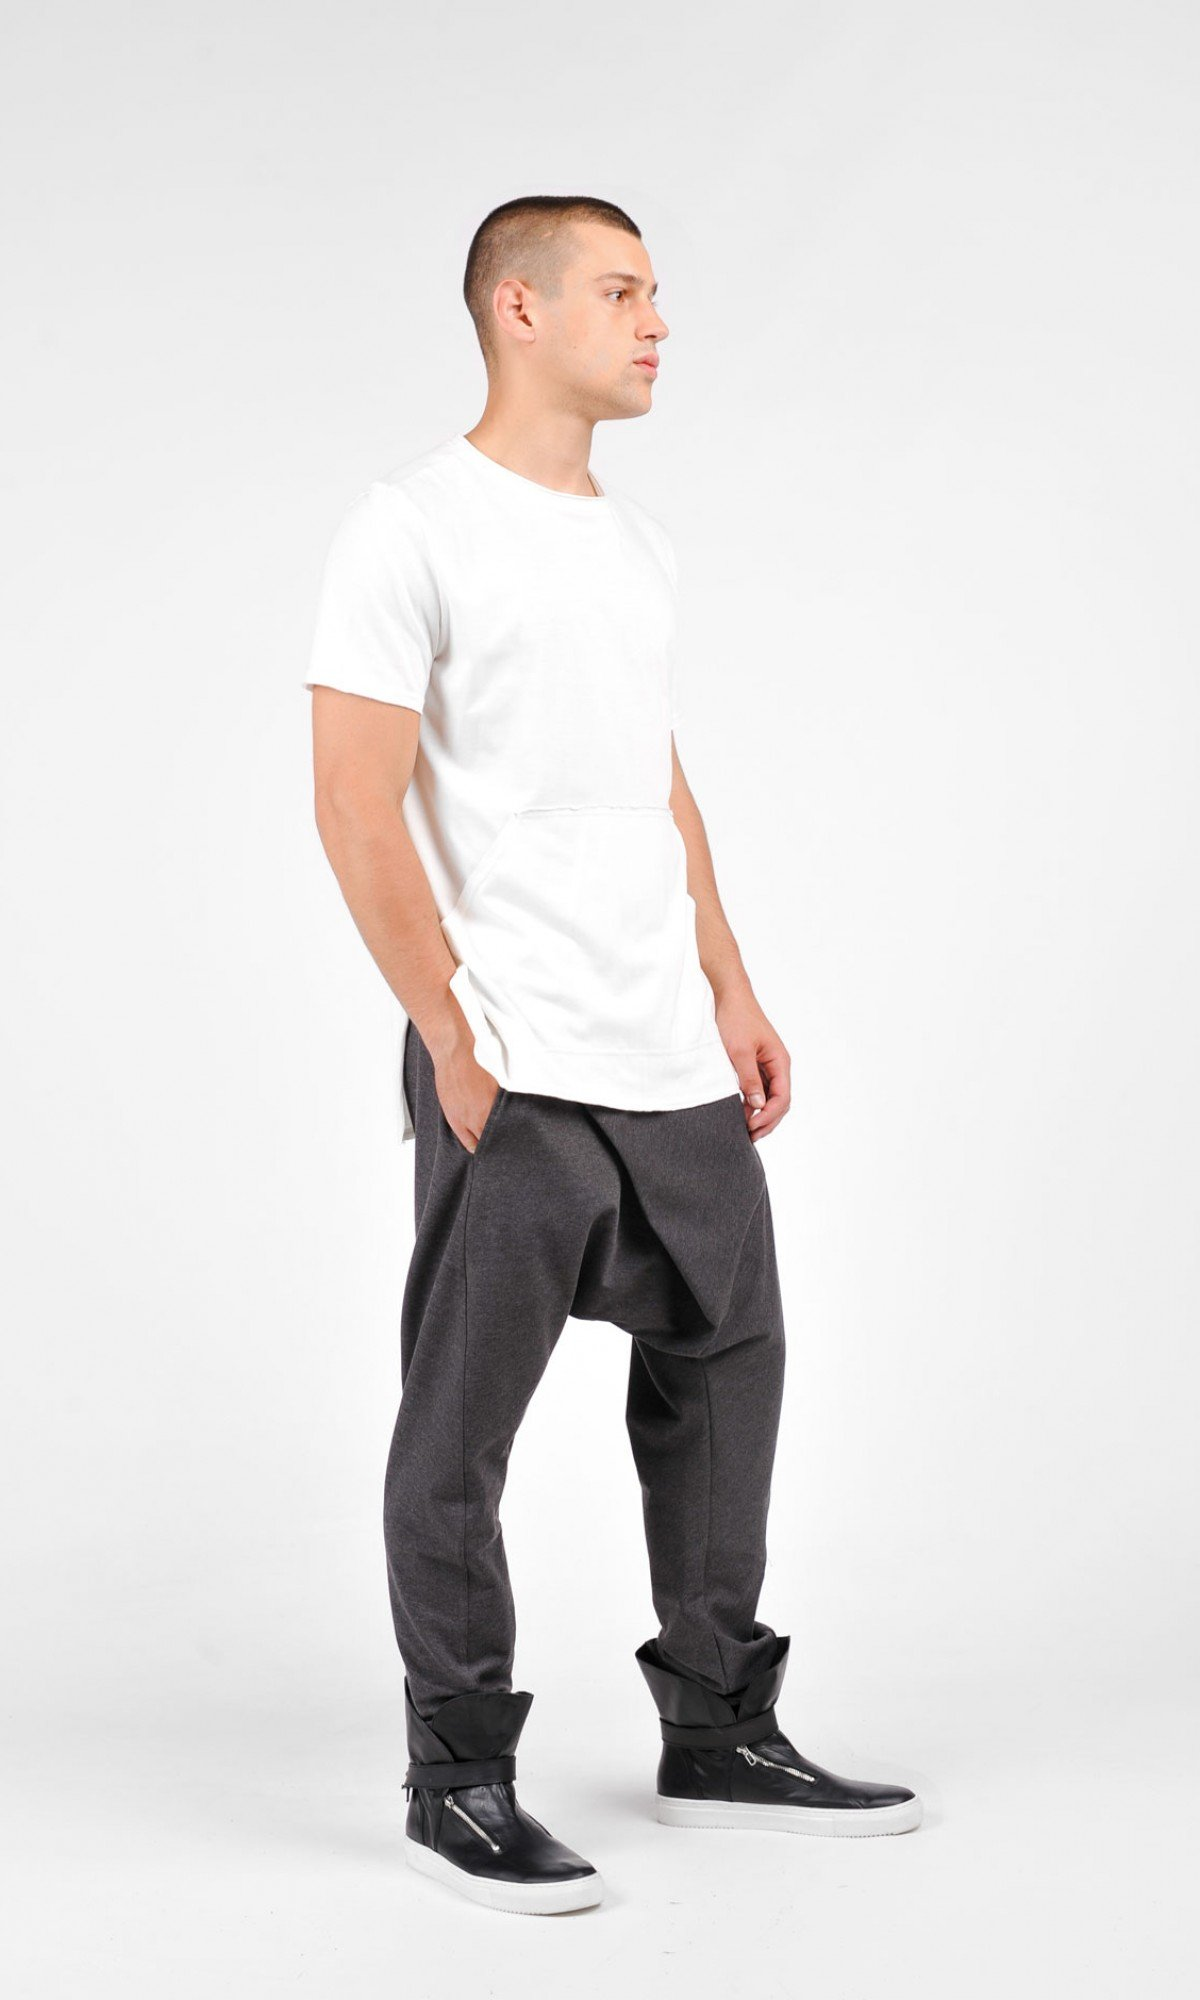 Loose Casual Drop Crotch Harem Pants A05540M